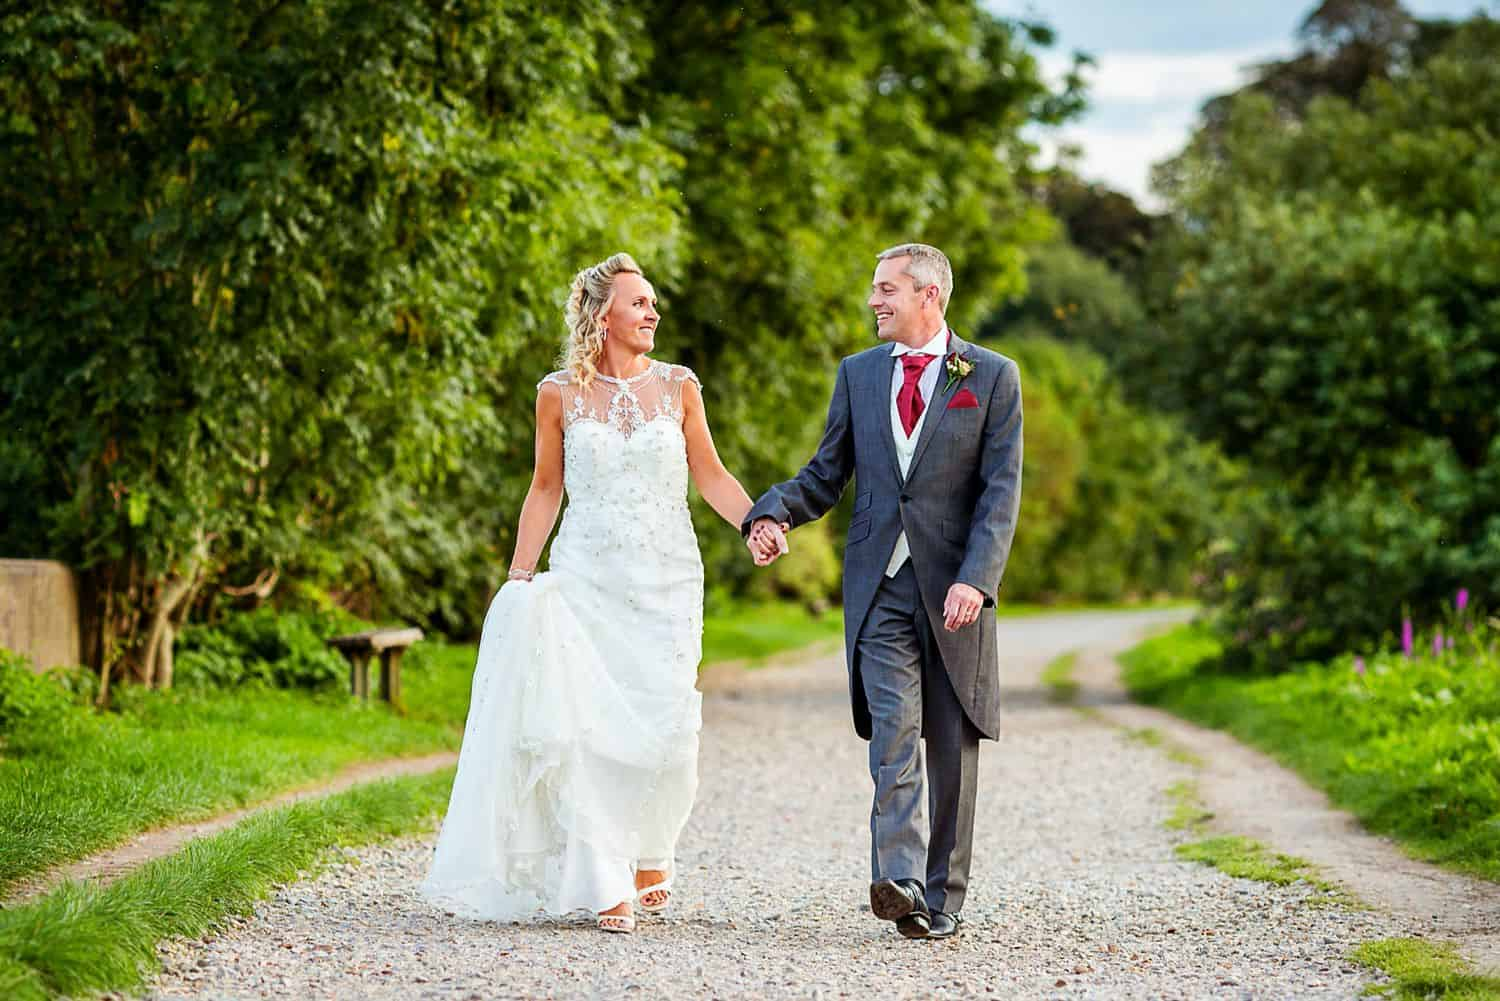 A bride and groom stroll outside down a garden path before their wedding